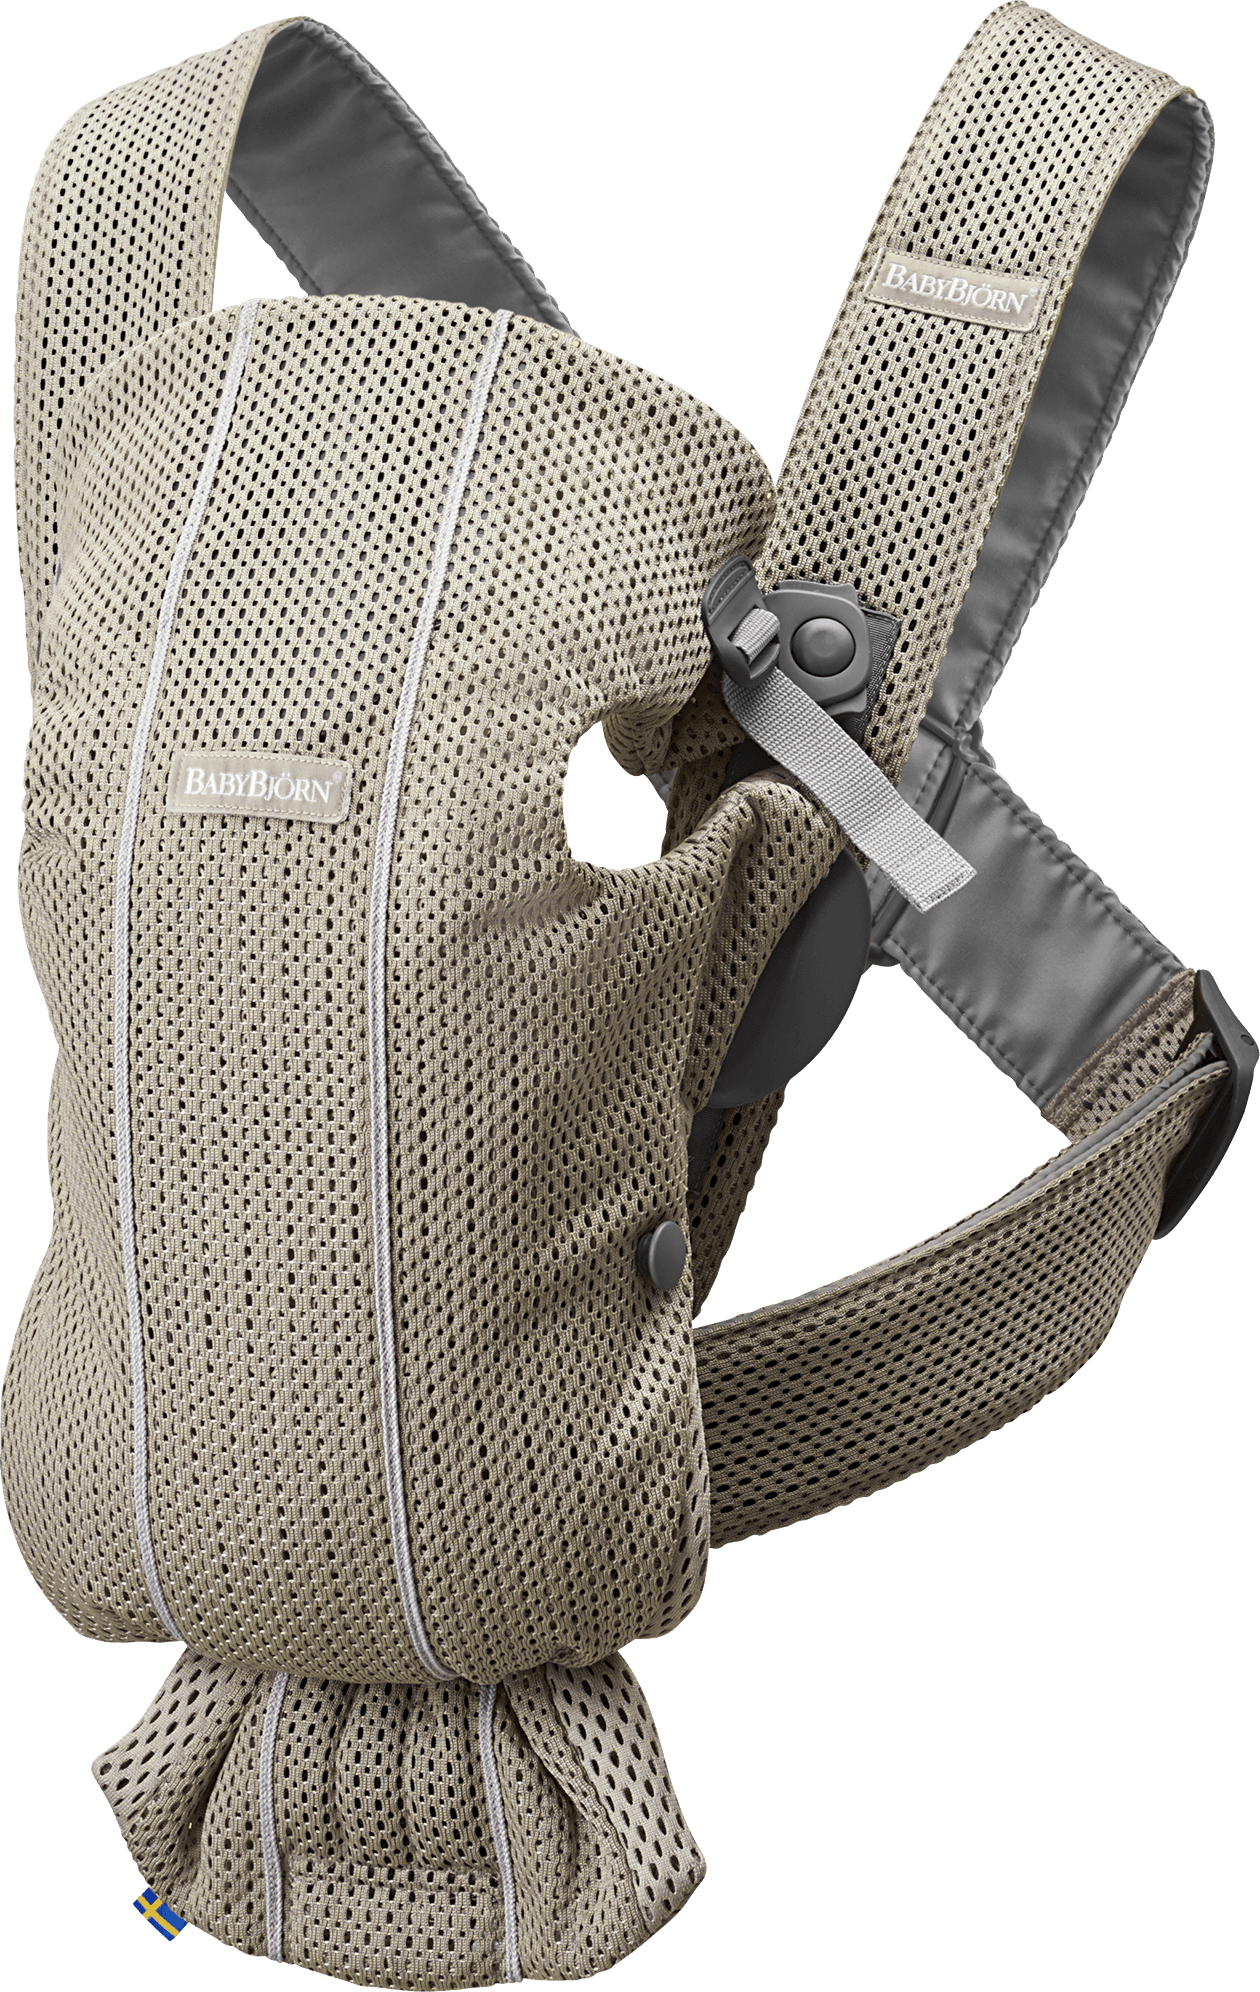 BABYBJÖRN Baby Carrier Mini, Greige, 3D Mesh, perfect first baby carrier for a newborn.